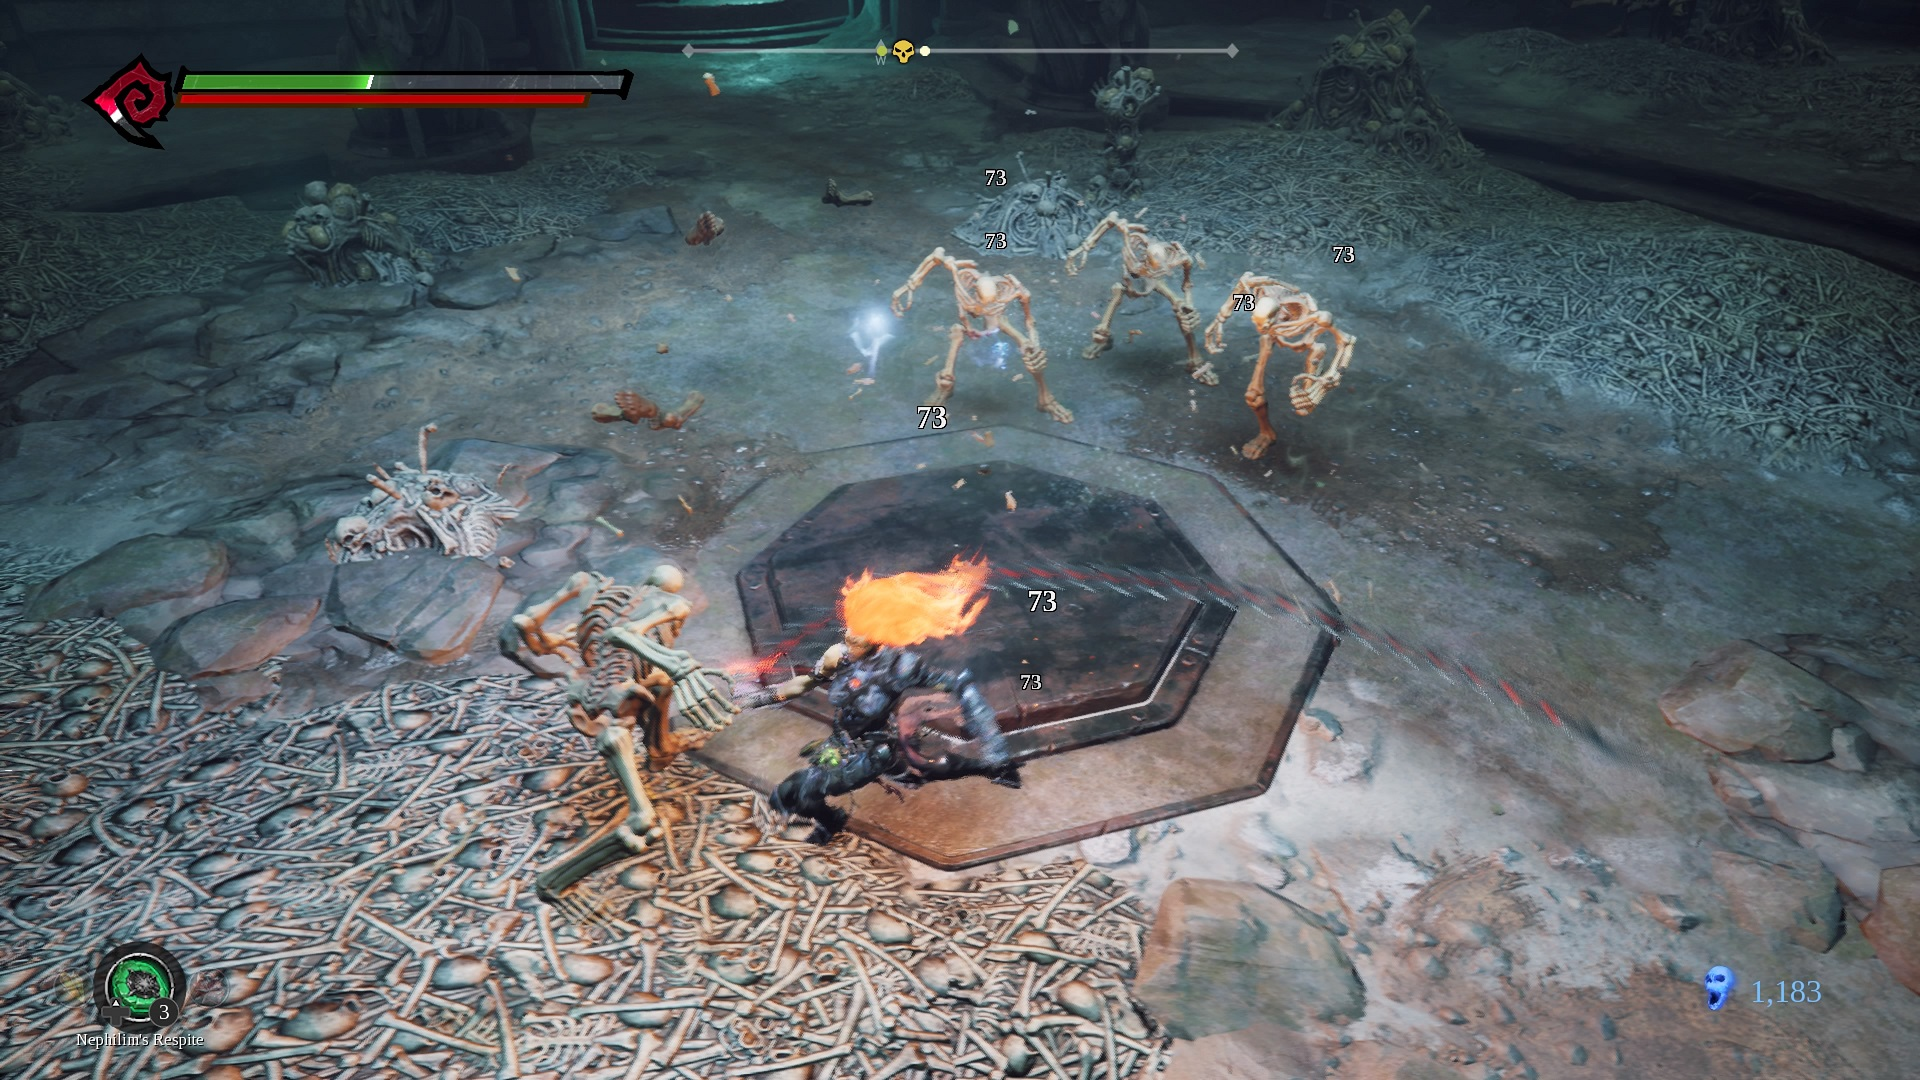 Darksiders 3 classic combat system patch